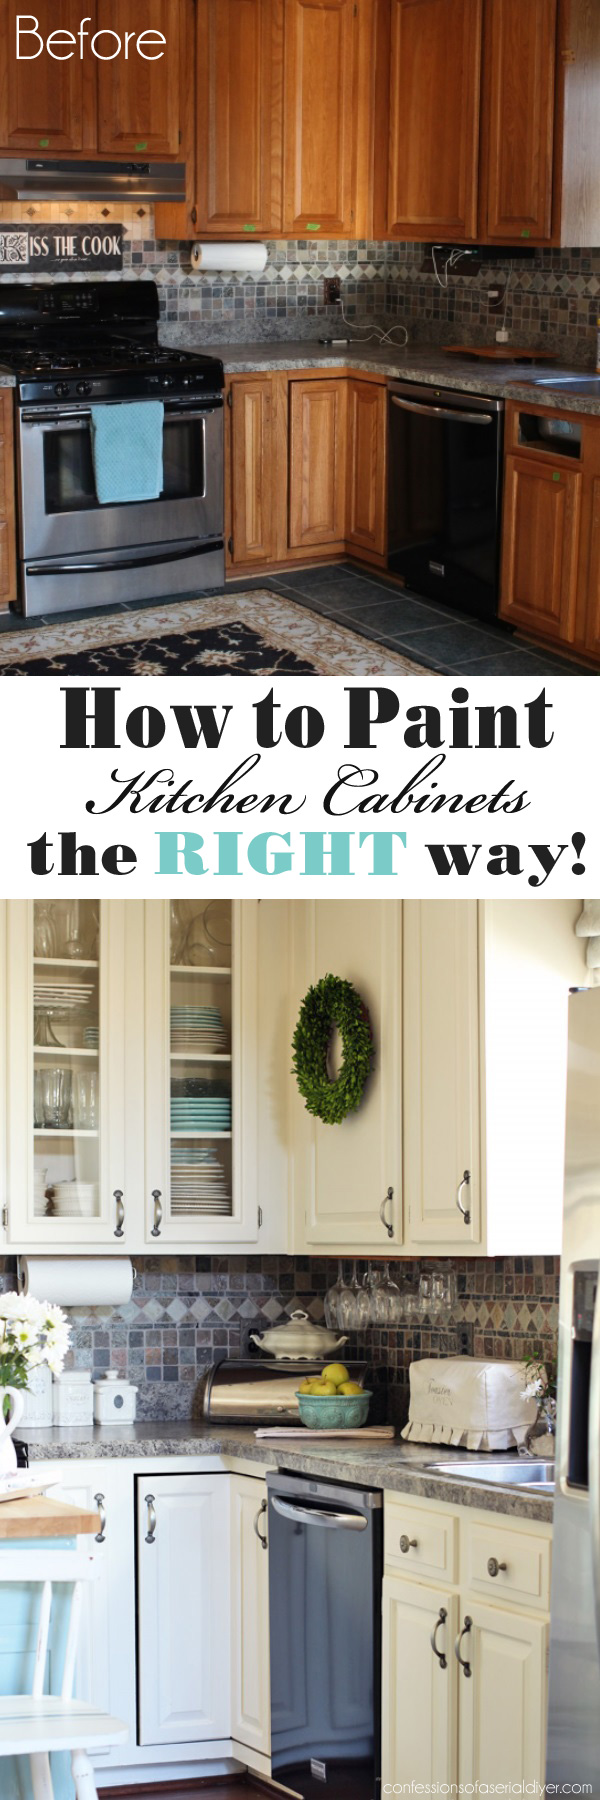 how to paint kitchen cabinets a step by step guide With what kind of paint to use on kitchen cabinets for art for large wall